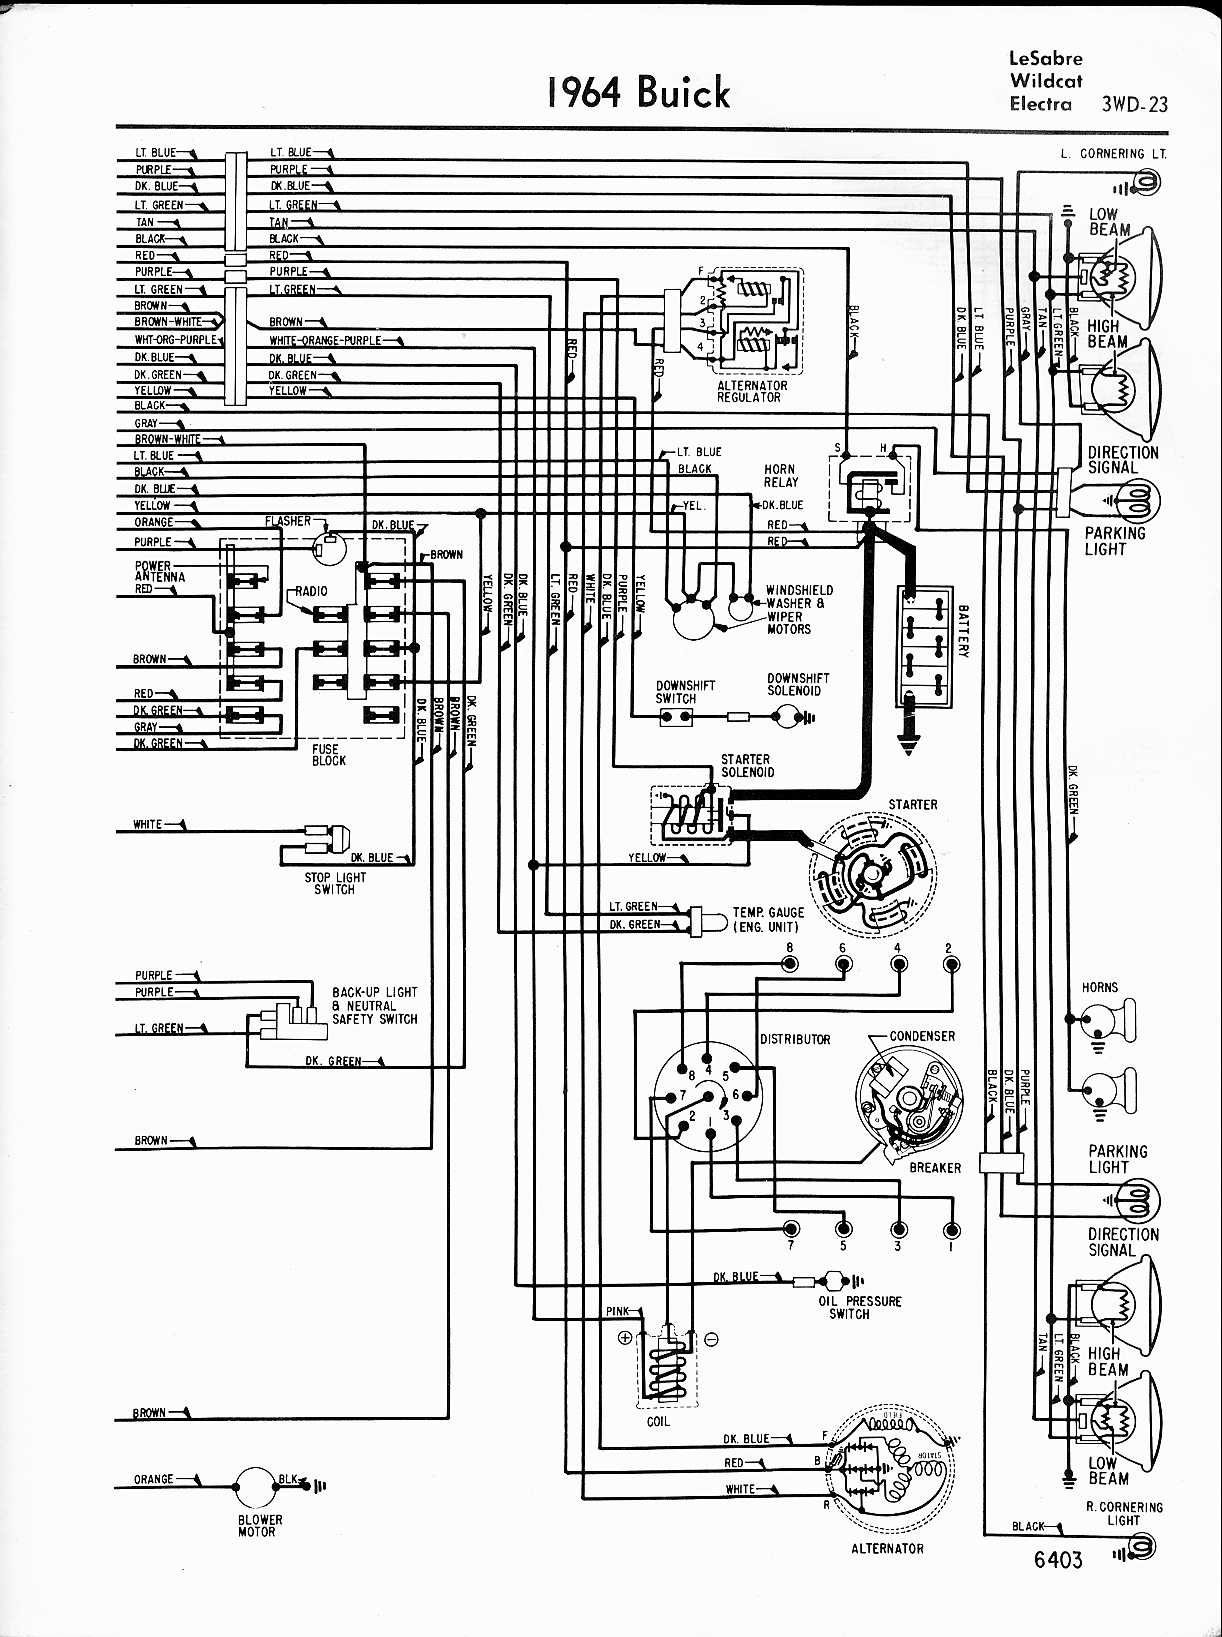 95 Dodge Spirit Fuse Diagram Manual Guide Wiring Box Images Gallery